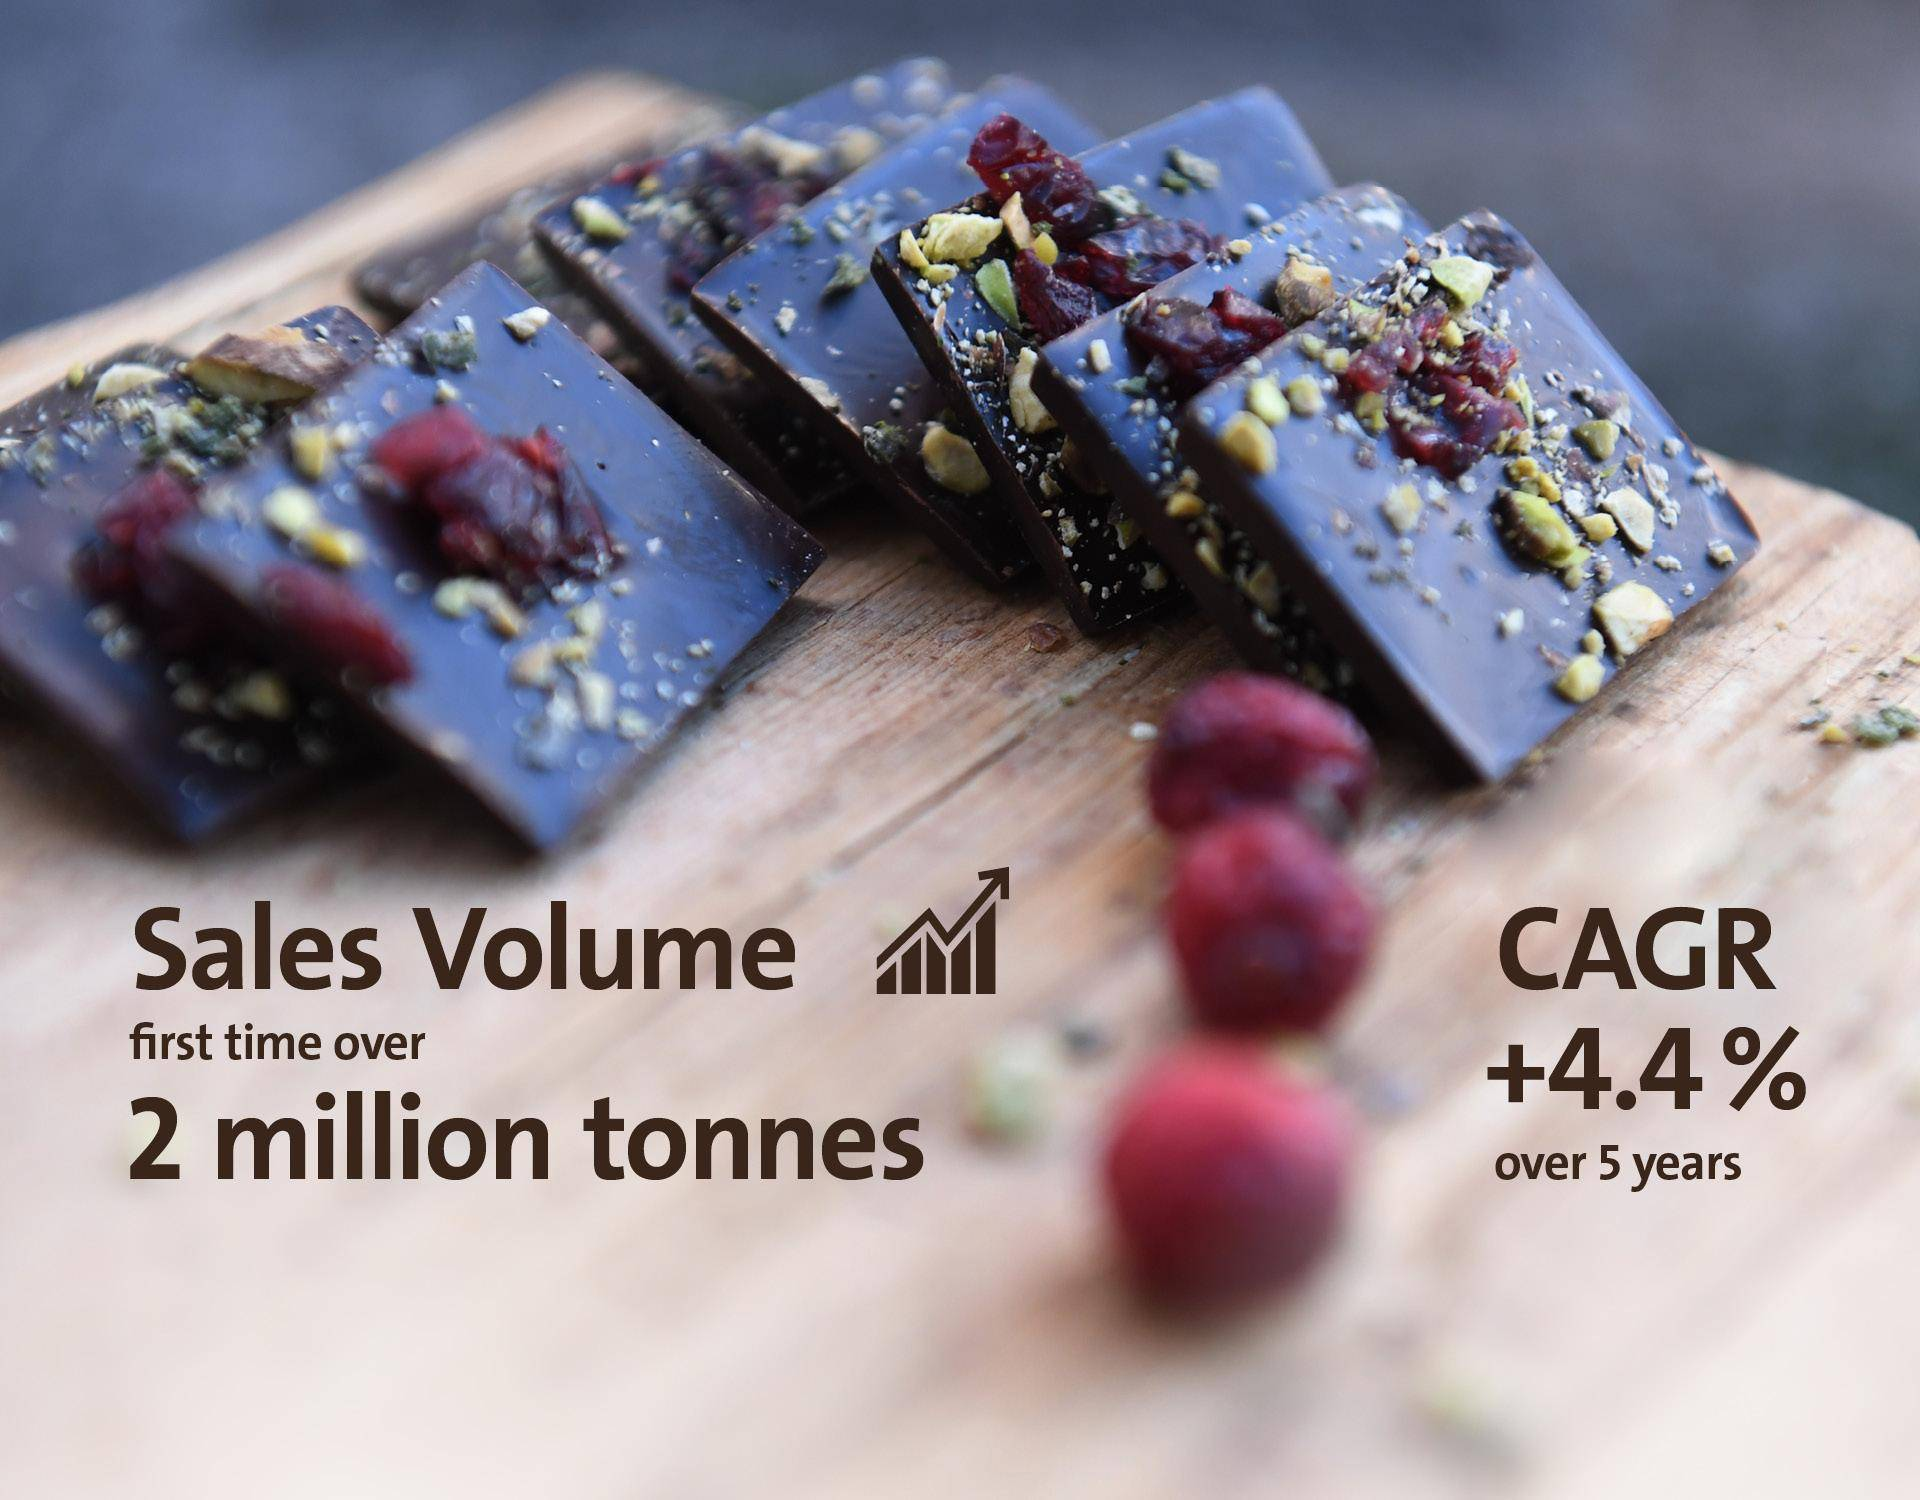 Image Slider Sales Volume Fiscal Year 2017/18 Barry Callebaut Group